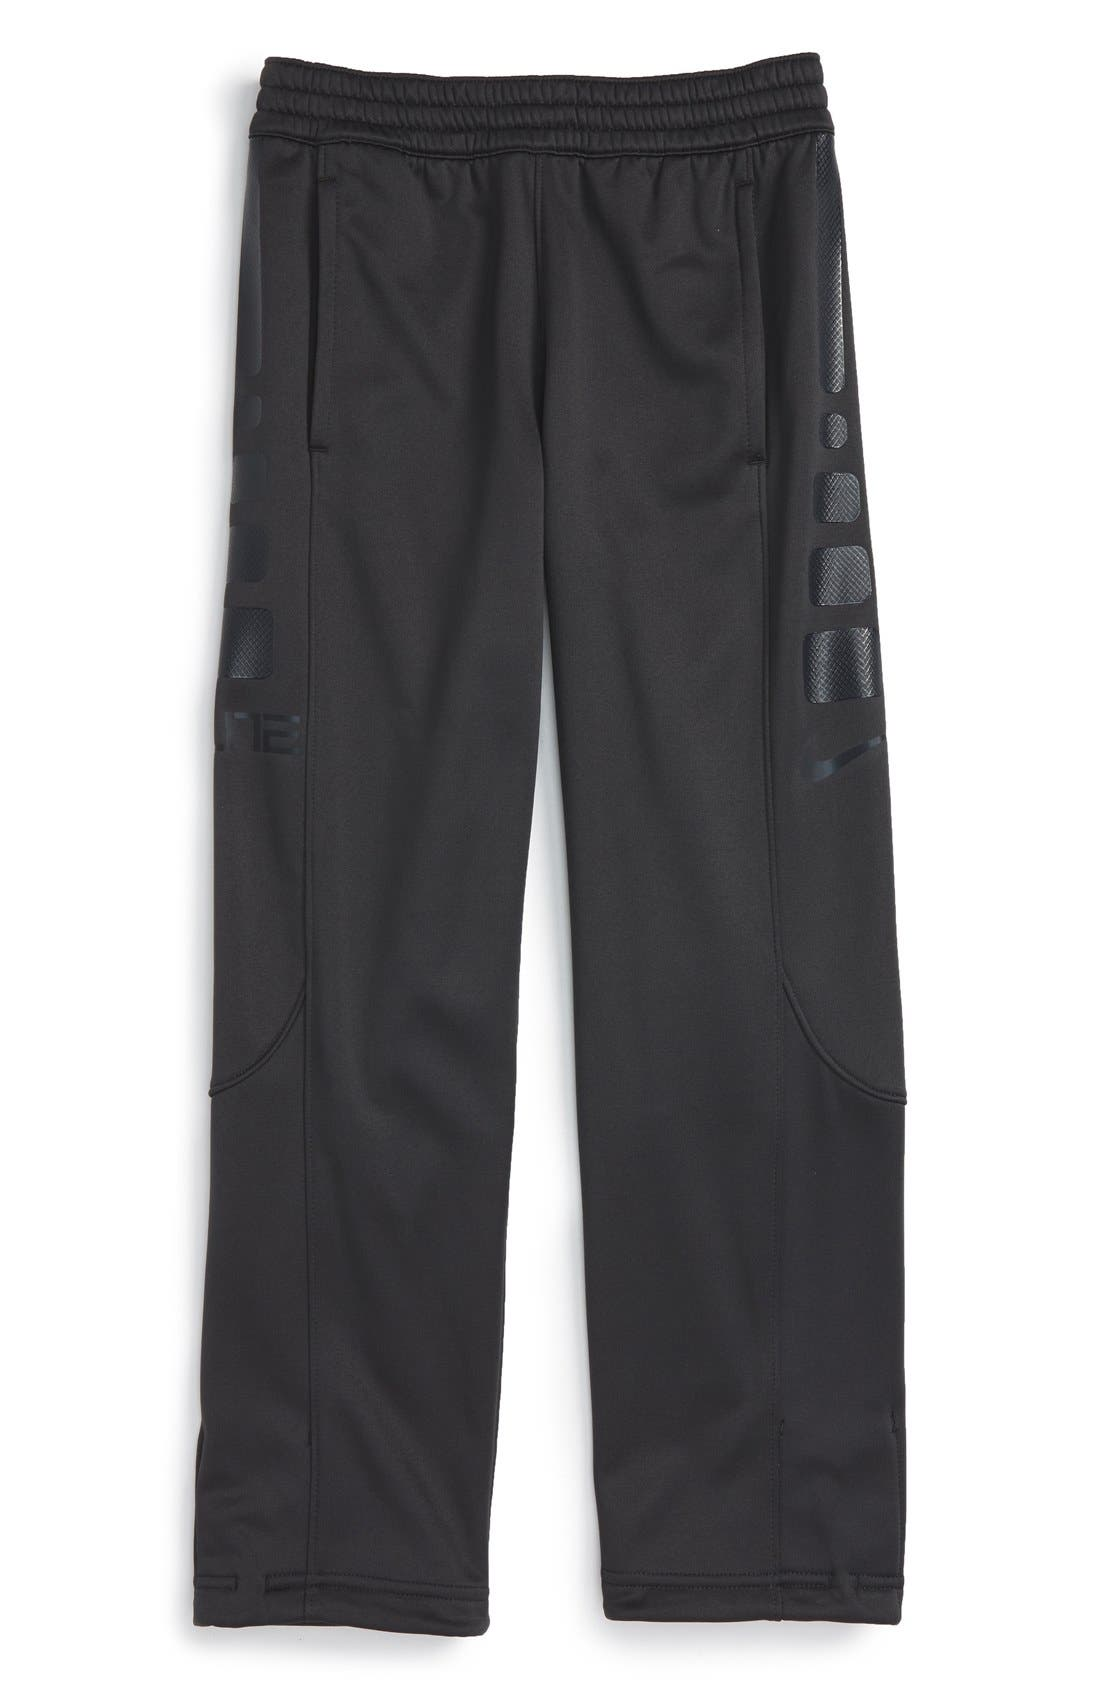 'Elite' Therma-FIT Pants,                         Main,                         color, Antrhacite/ Black